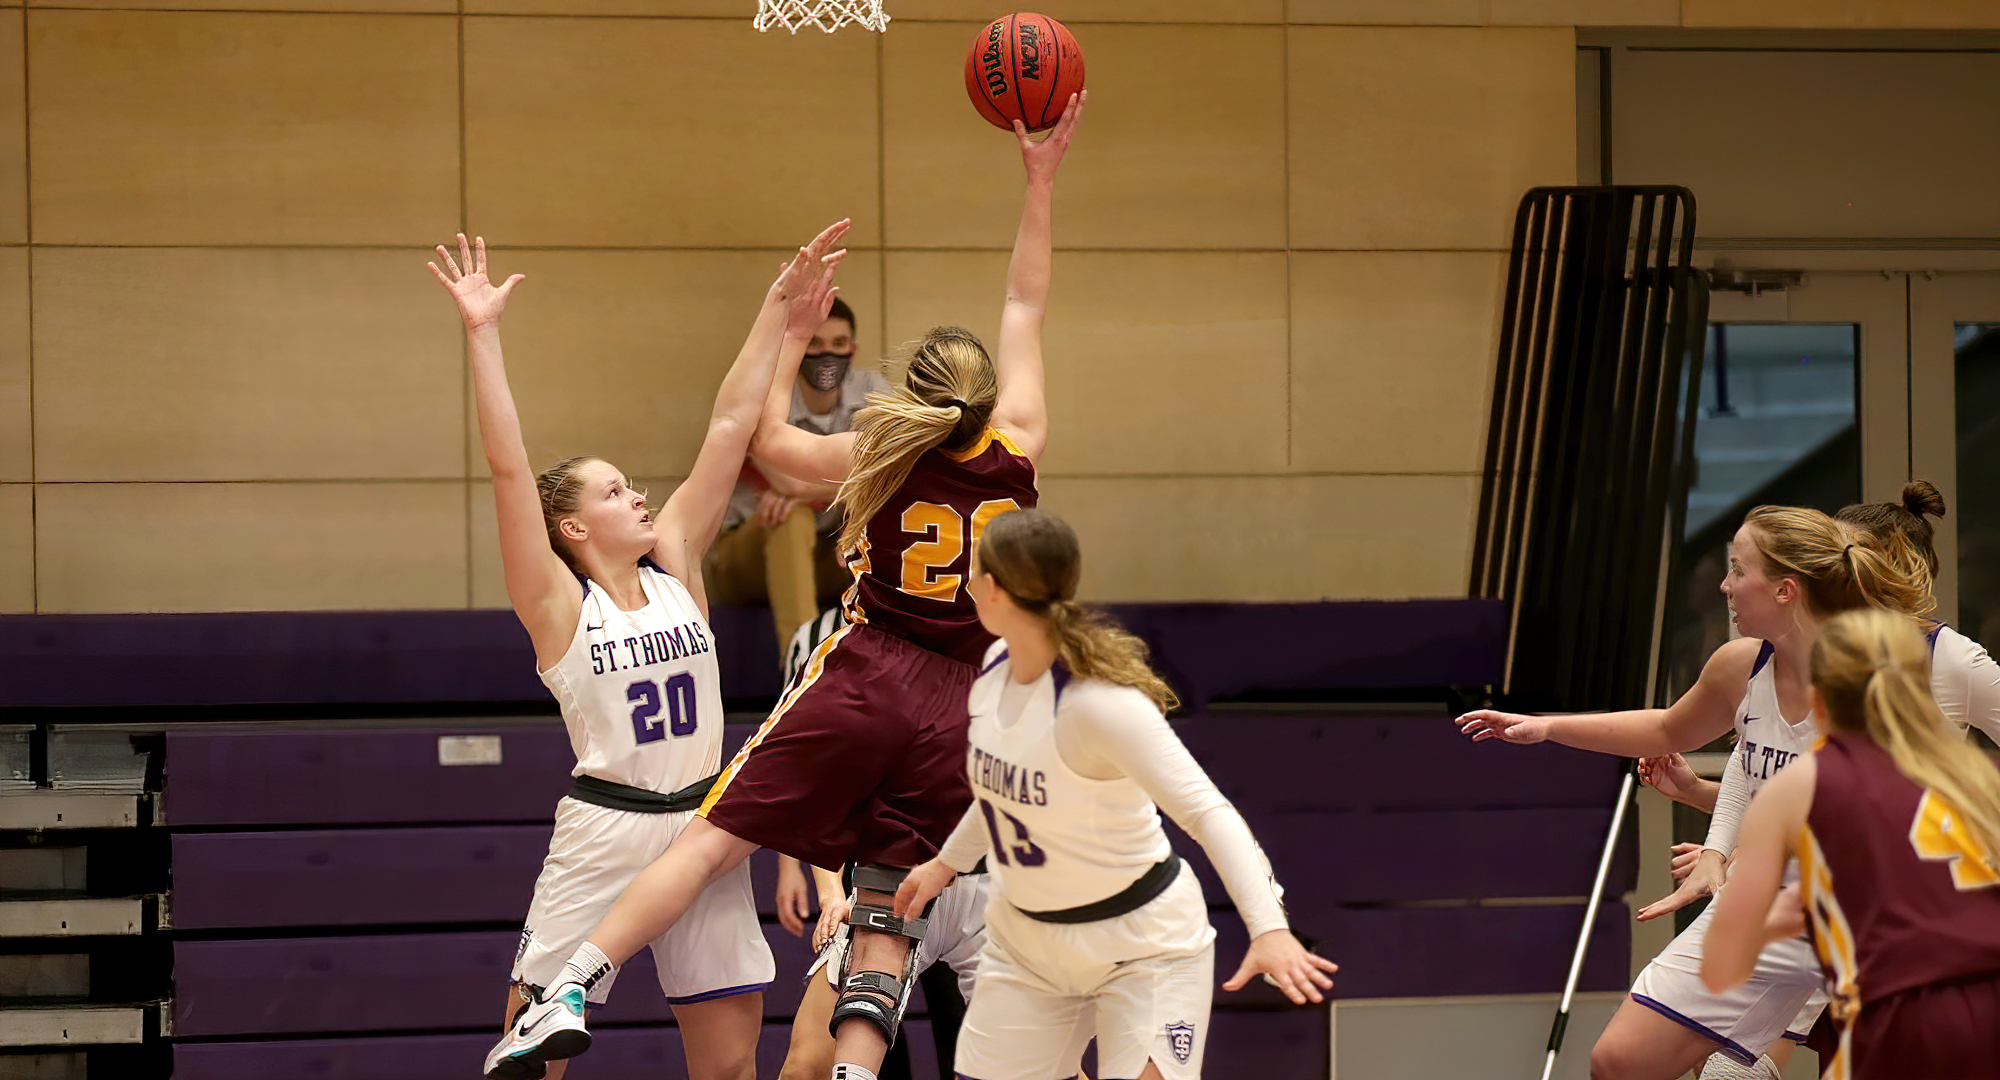 Emily Beseman drives to the basket to drop in two of her game-high 25 points during the Cobbers' game at St. Thomas. (Photo courtesy of D3photography.com)